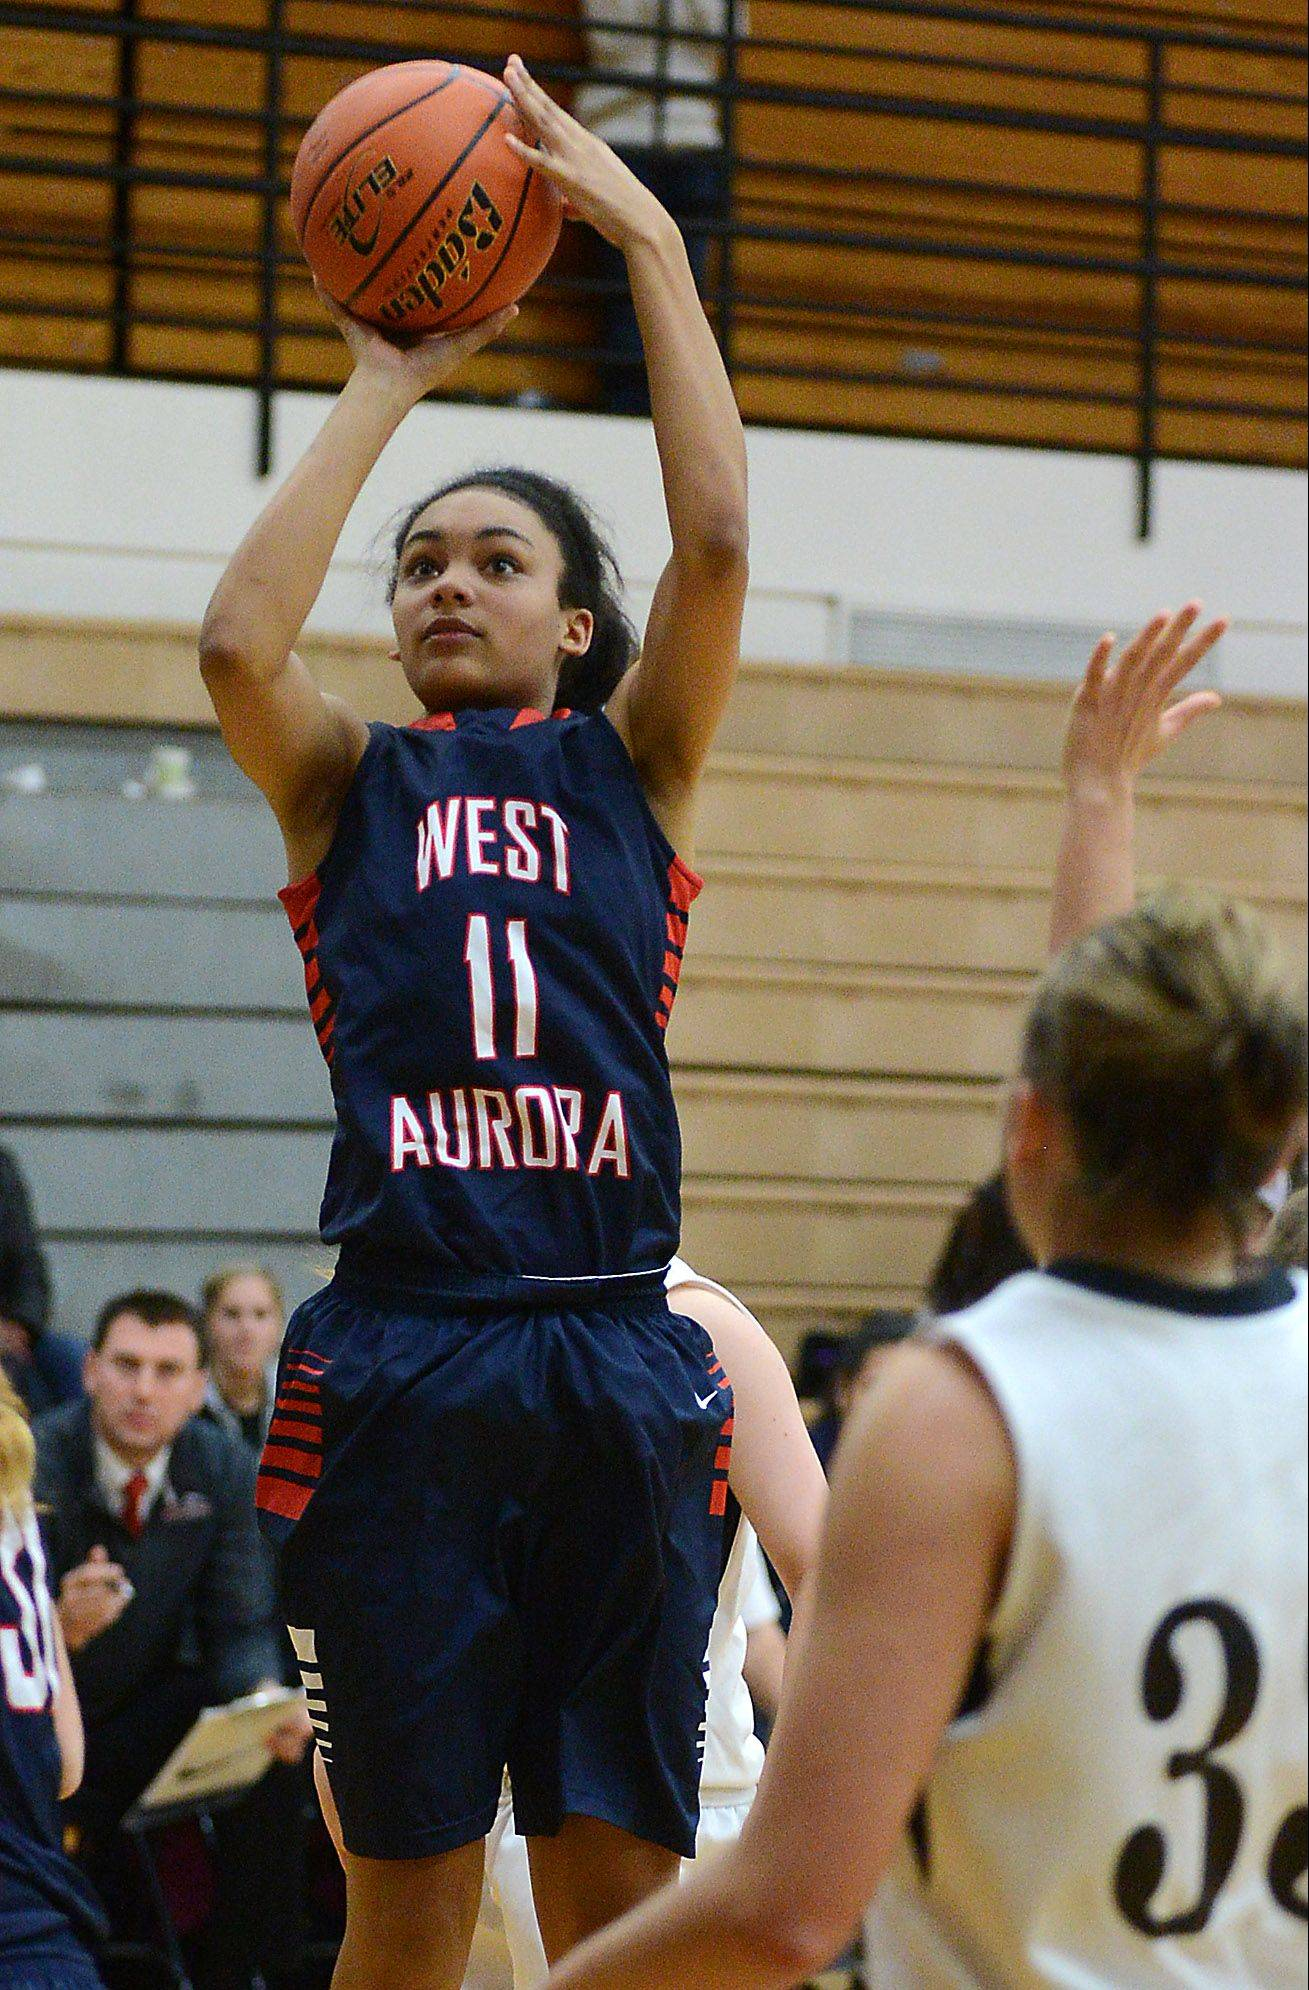 West Aurora's Abriya Zeitz (11) shoots and scores against Kaneland during Thursday's game in Maple Park.